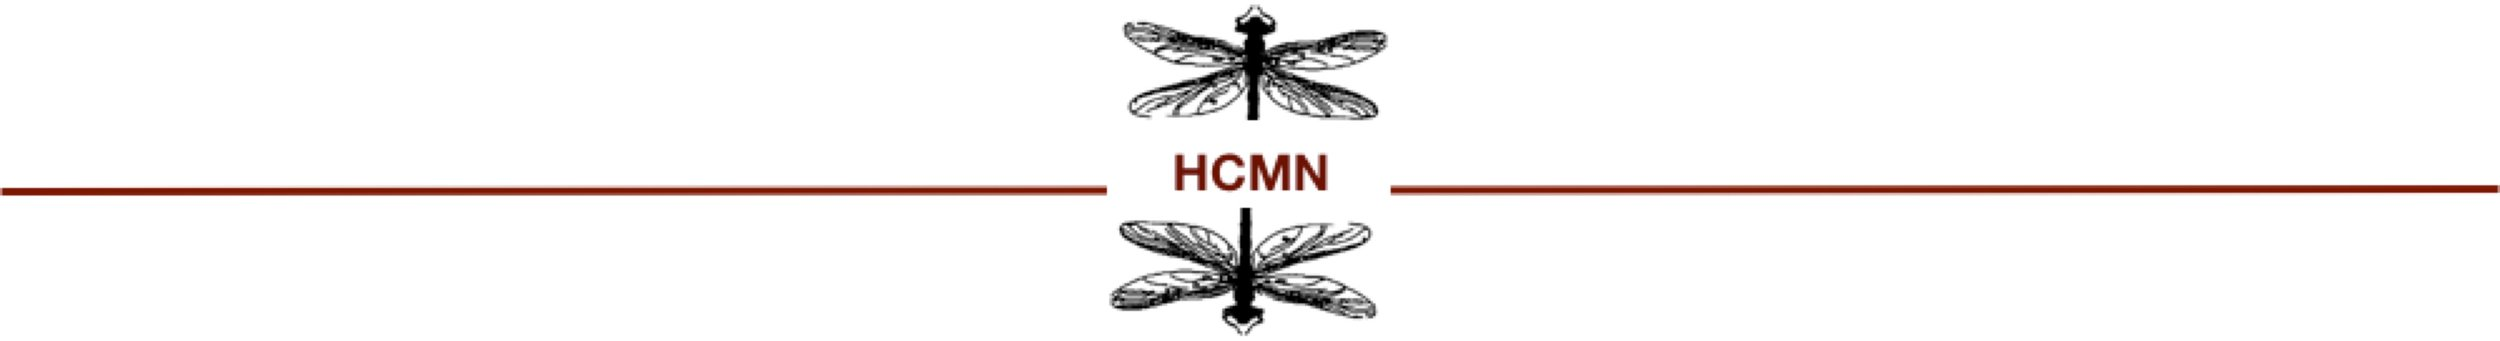 Line Graphic with HCMN Logo.jpg